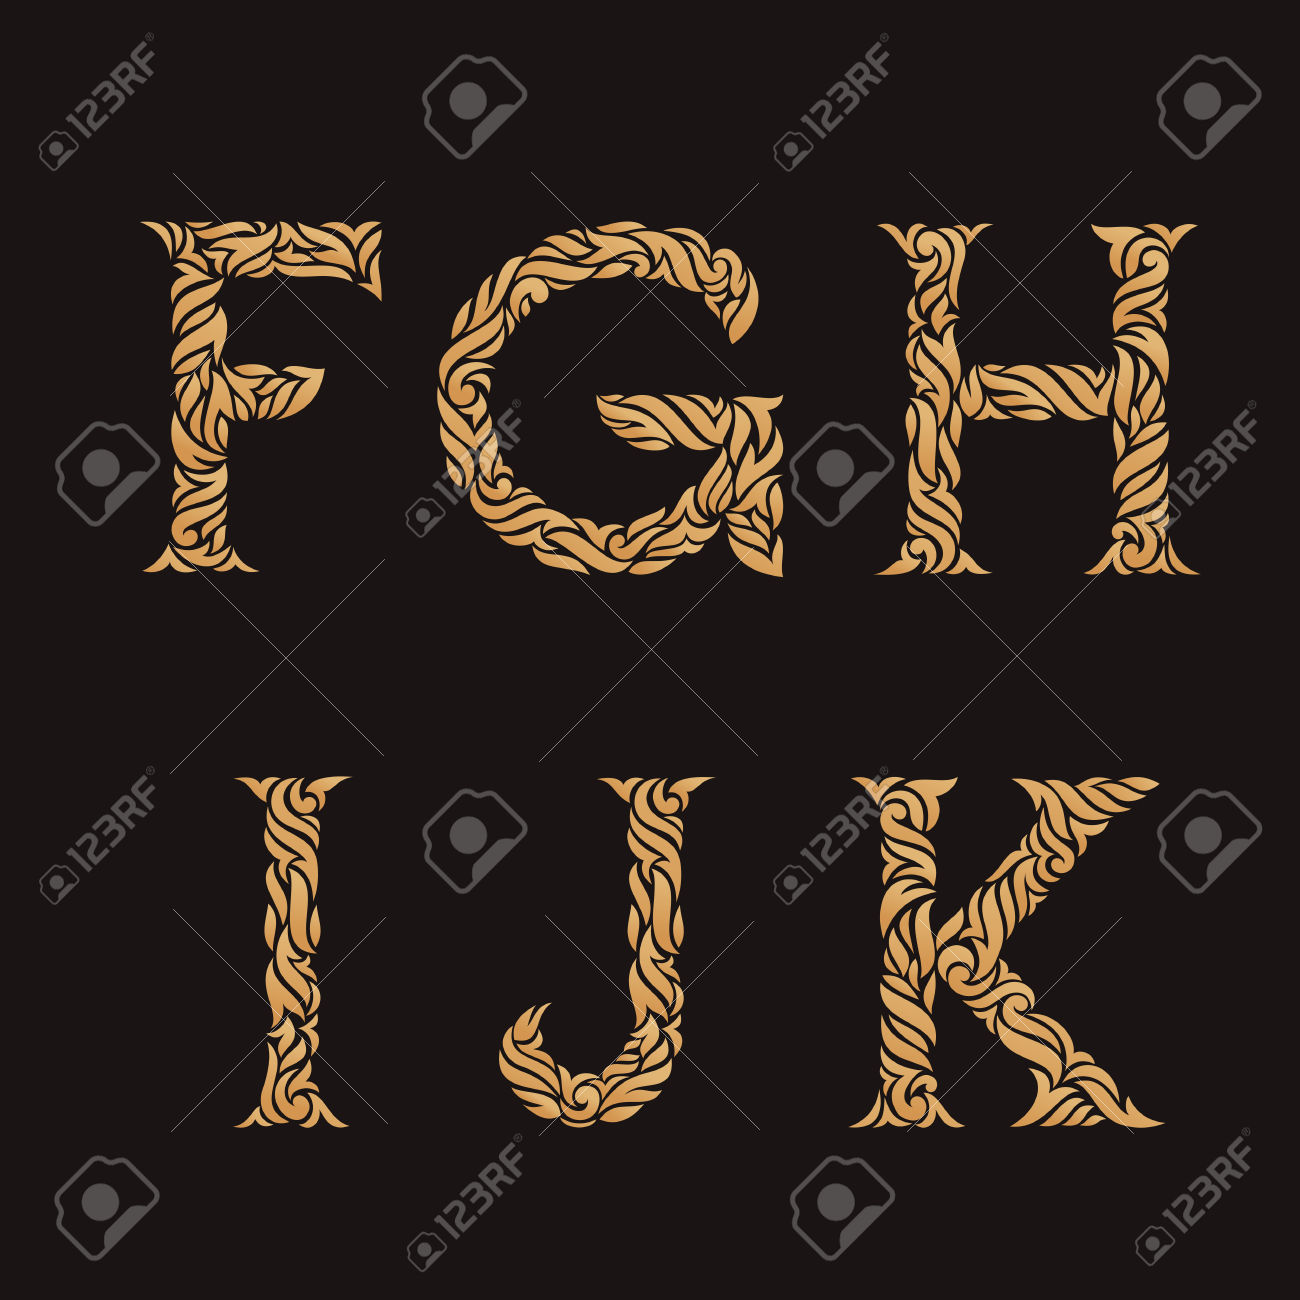 K f letters clipart.